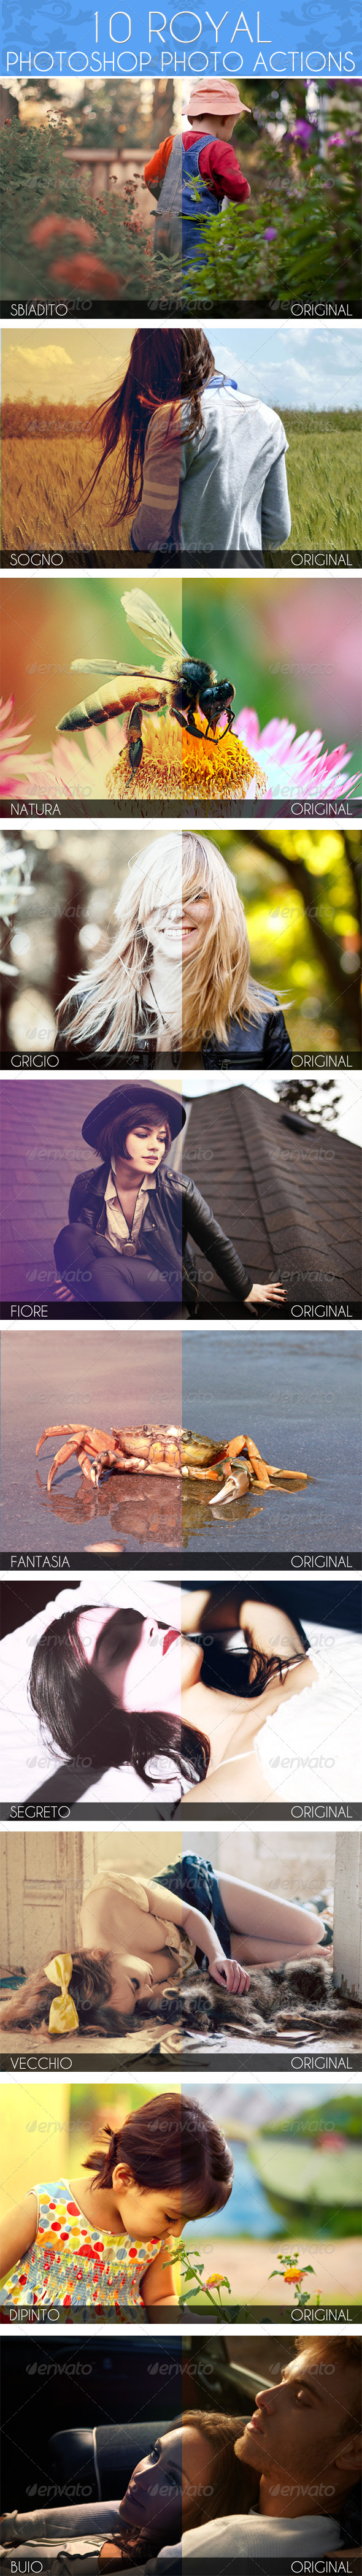 GraphicRiver 10 Royal PS Photo Actions 2572118